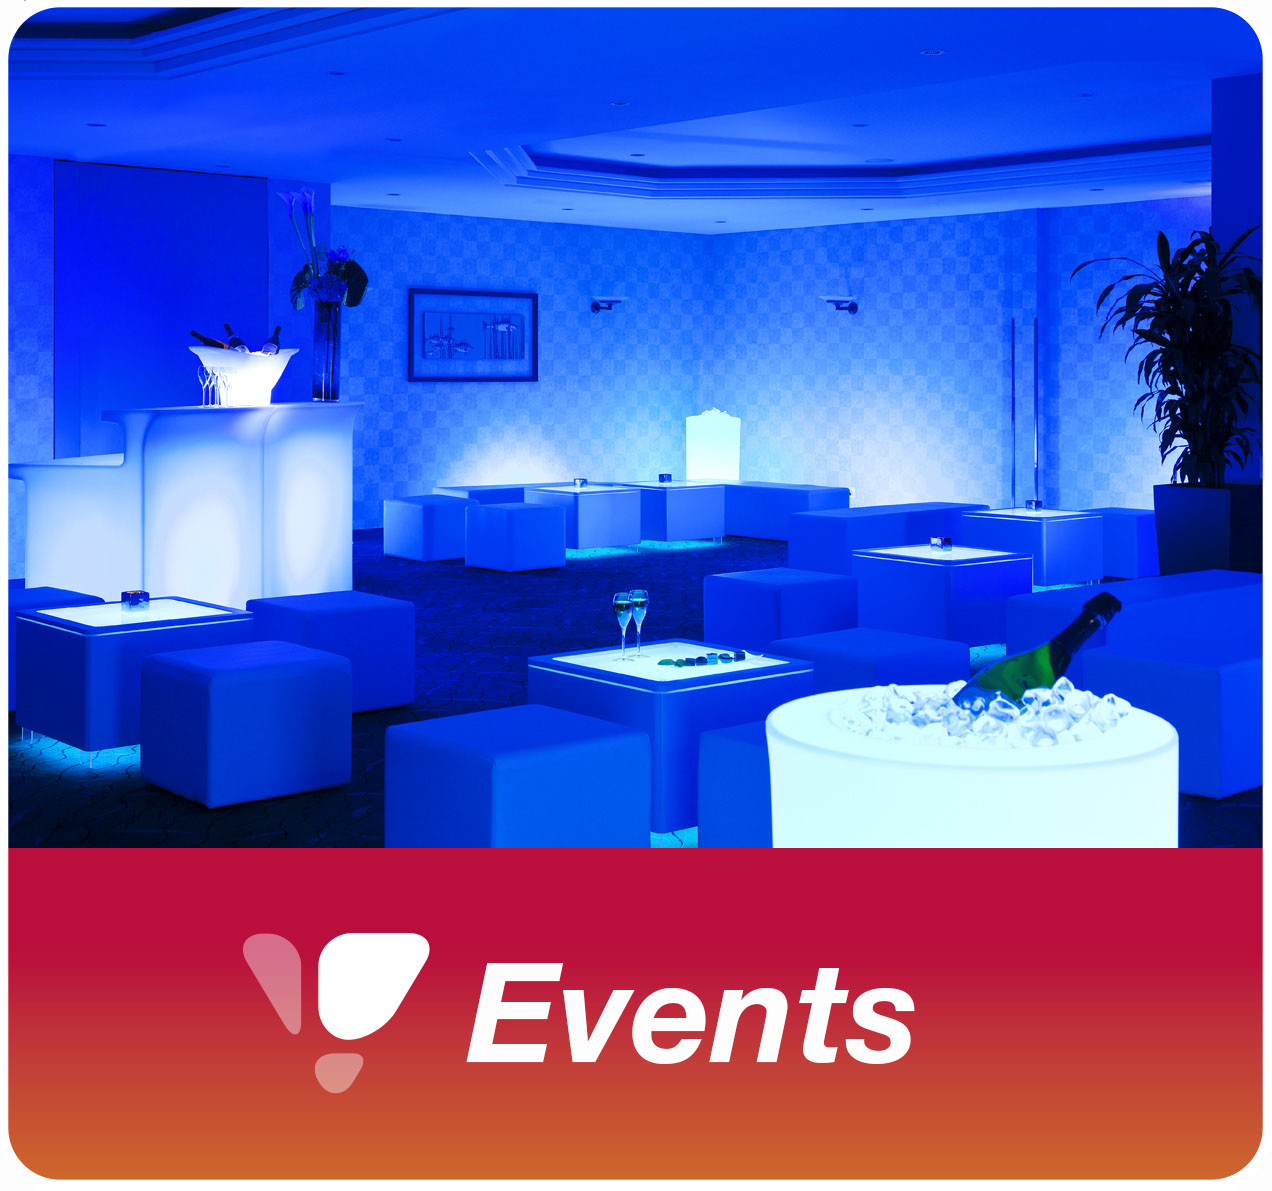 Rental of LED furniture and decoration